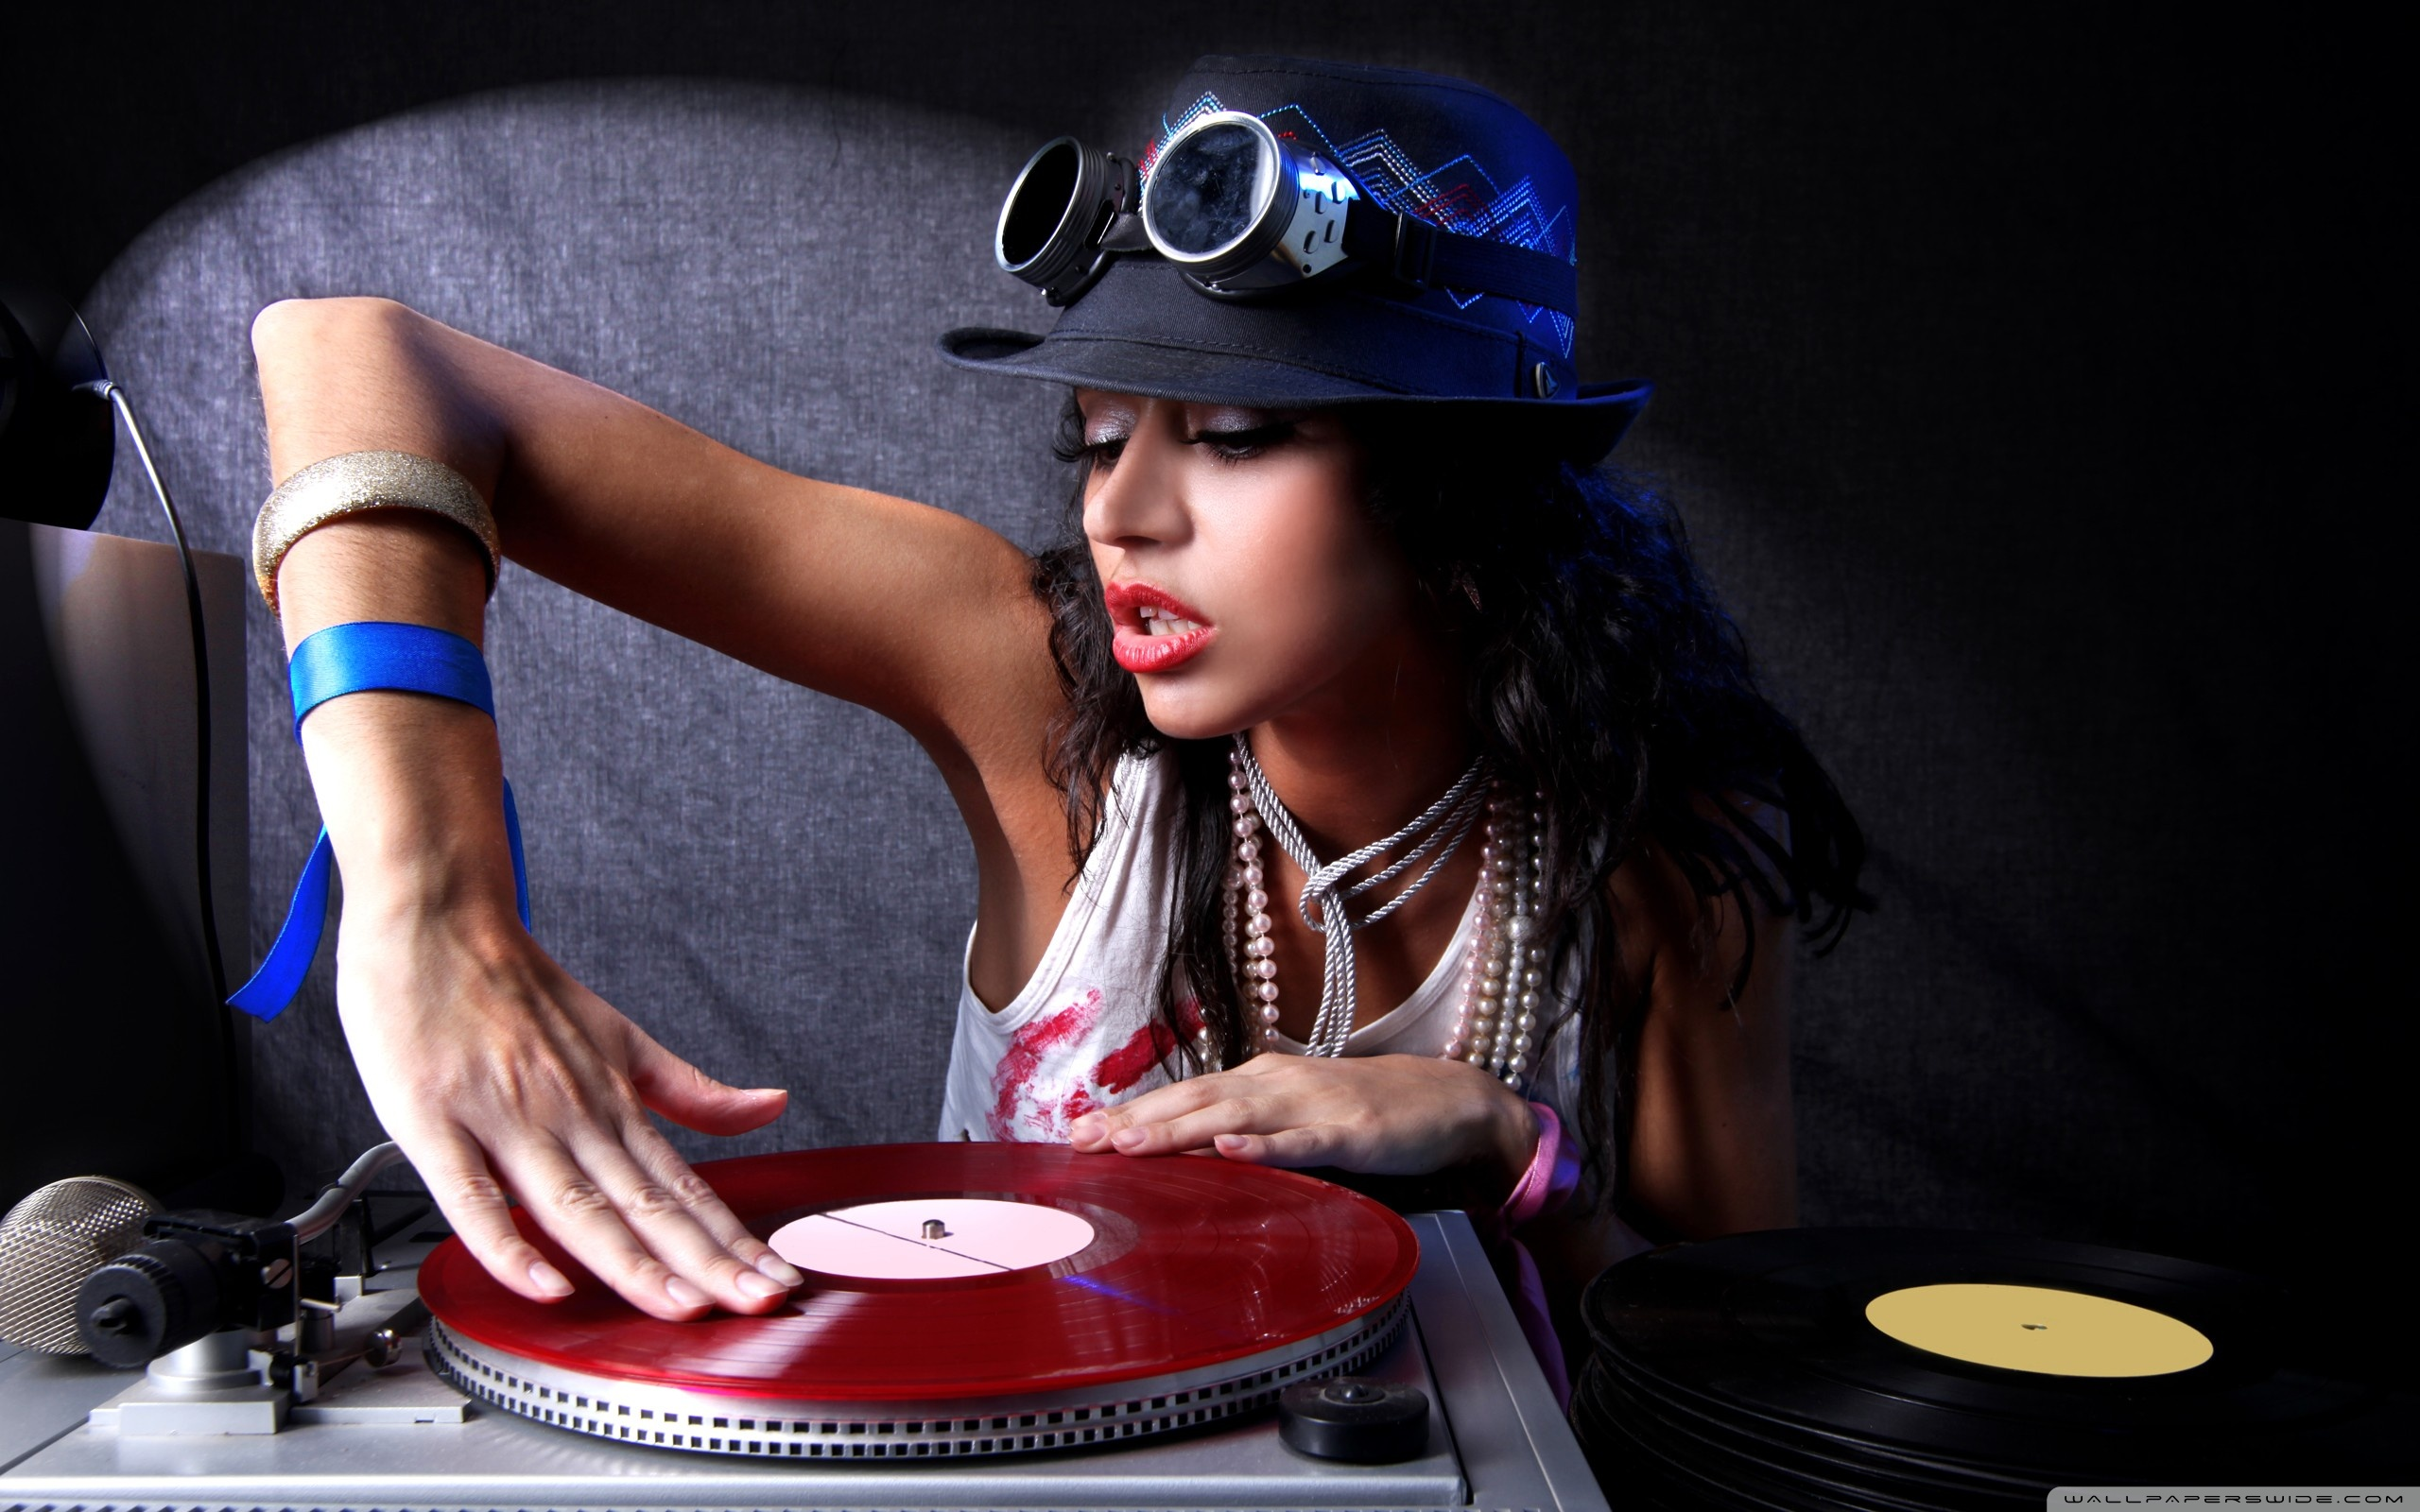 Related Wallpapers - Dj Girl Wallpaper Hd , HD Wallpaper & Backgrounds